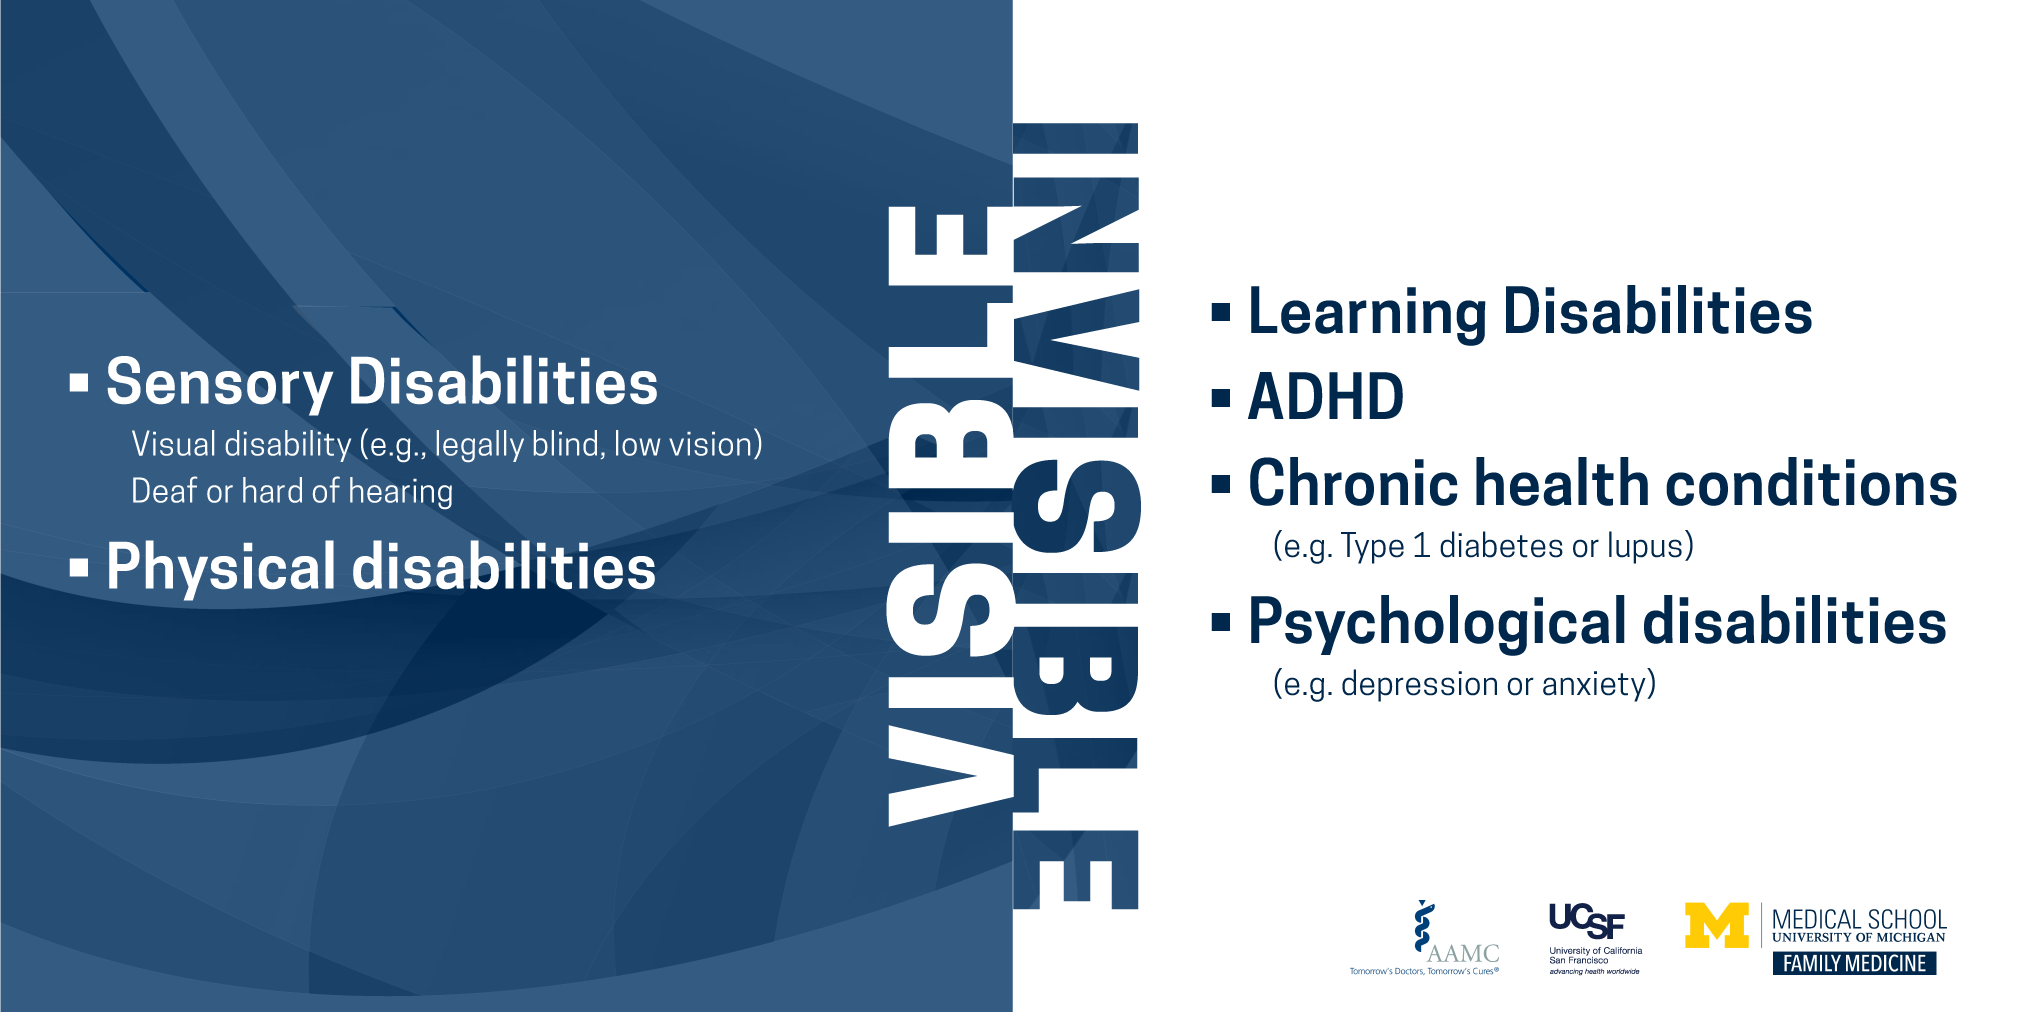 Visible disabilities: sensory and physical disabilities vs invisible disabilities: Learning disabilities, adhd, chronic health conditions, psychological disabilities